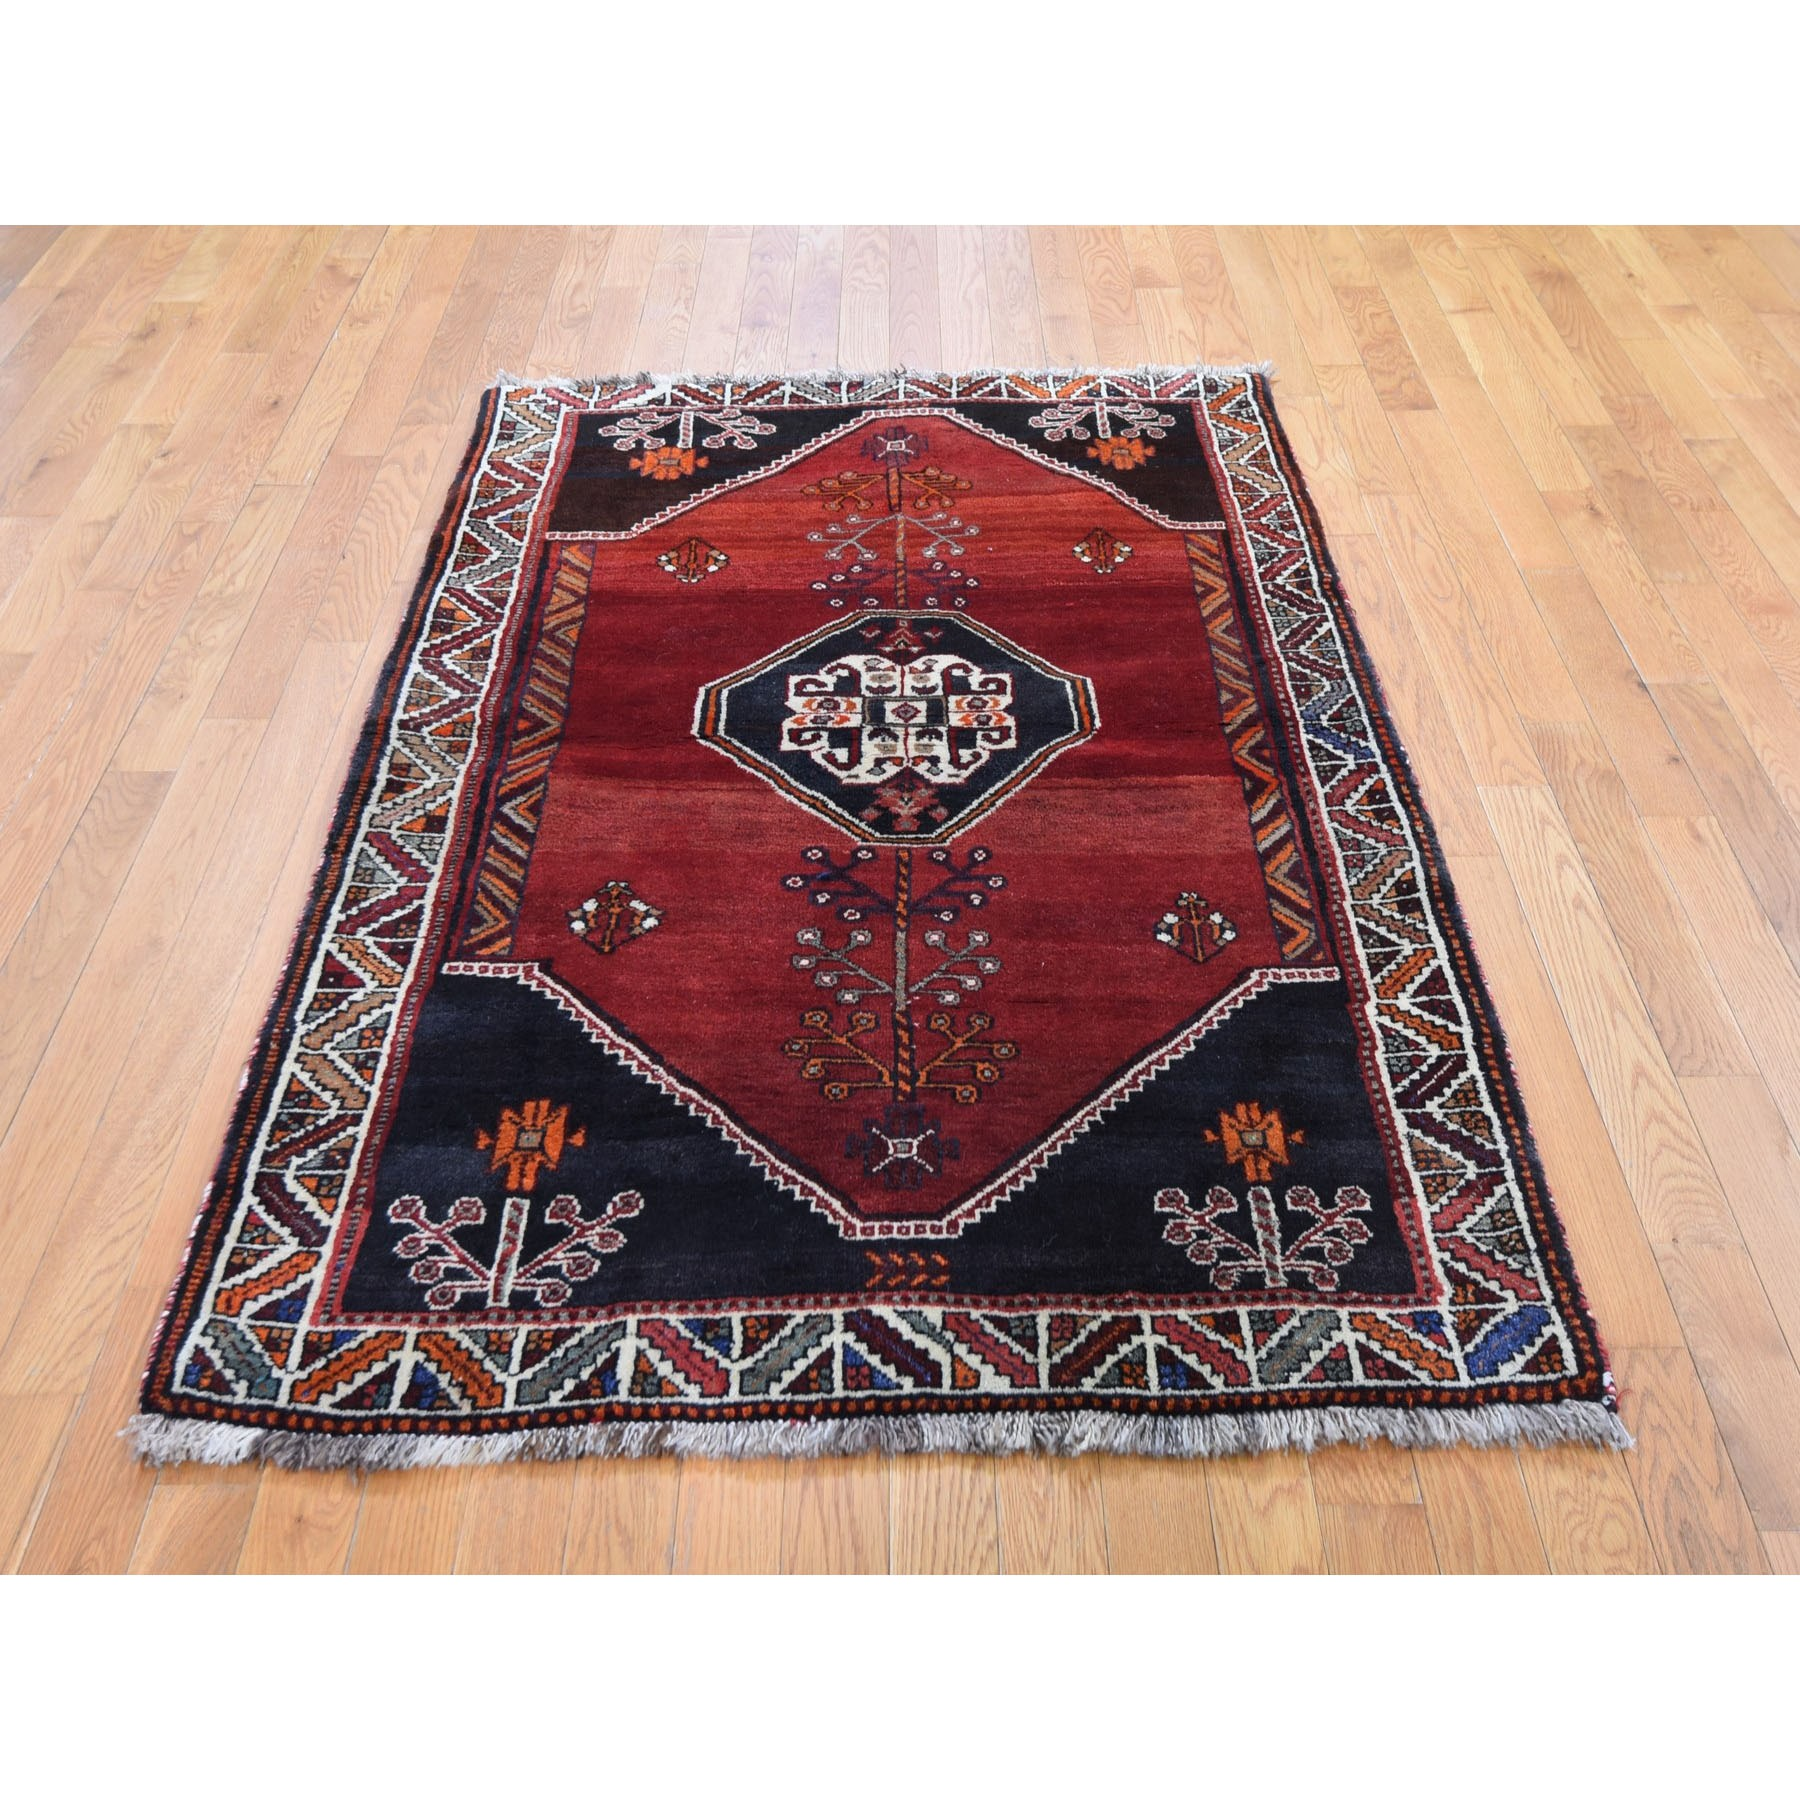 "4'x5'9"" Red New Persian Shiraz Abrush Pure Wool Hand Woven Oriental Rug"